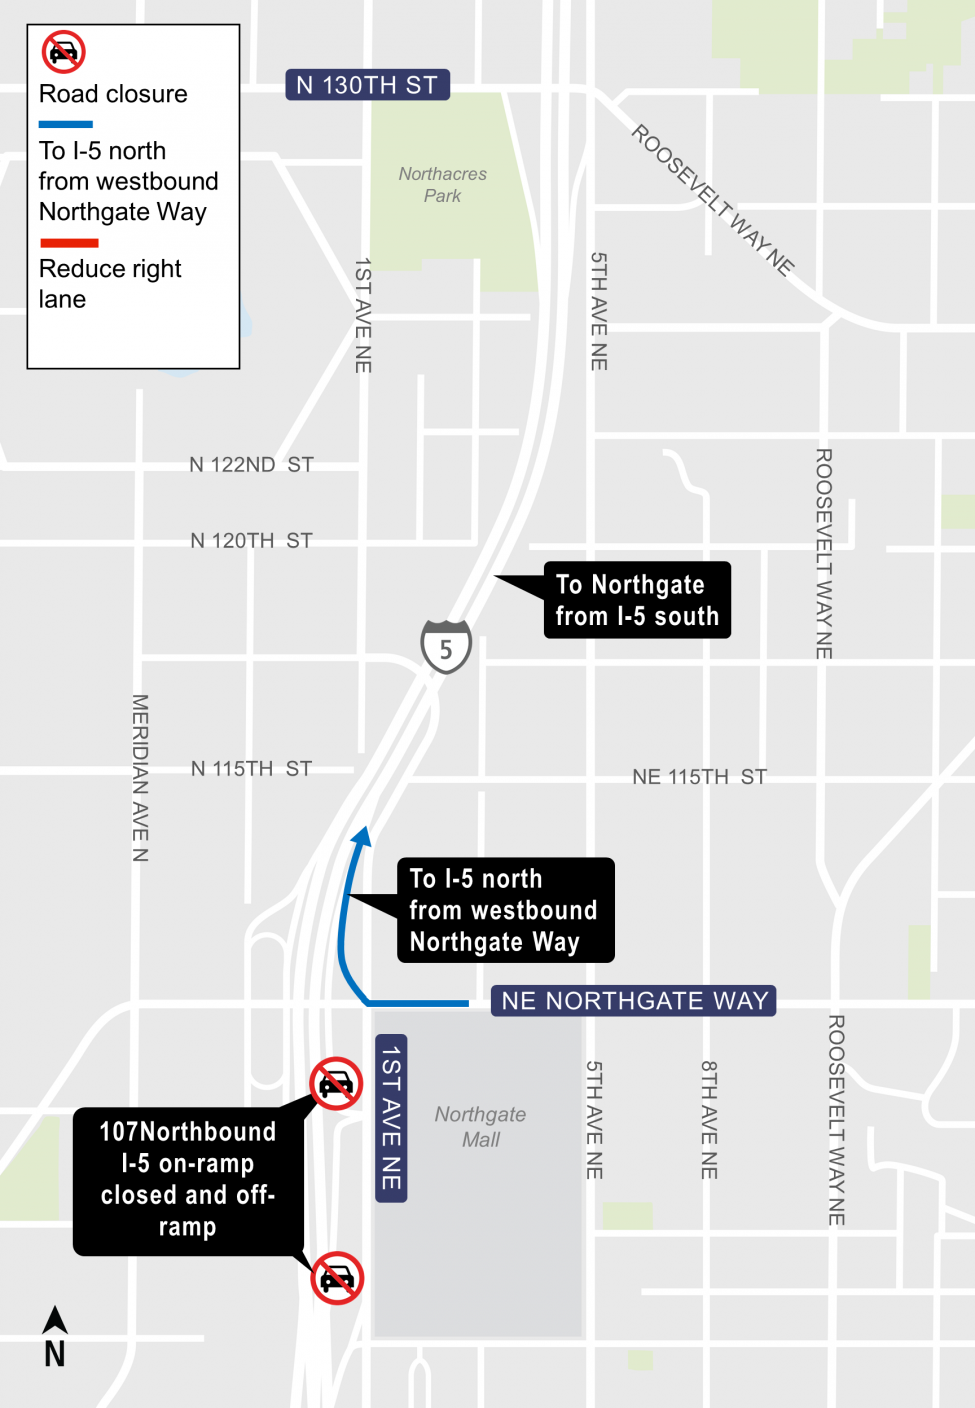 Map of closure of the Northeast 107 on-ramp to Interstate 5 in Northgate.